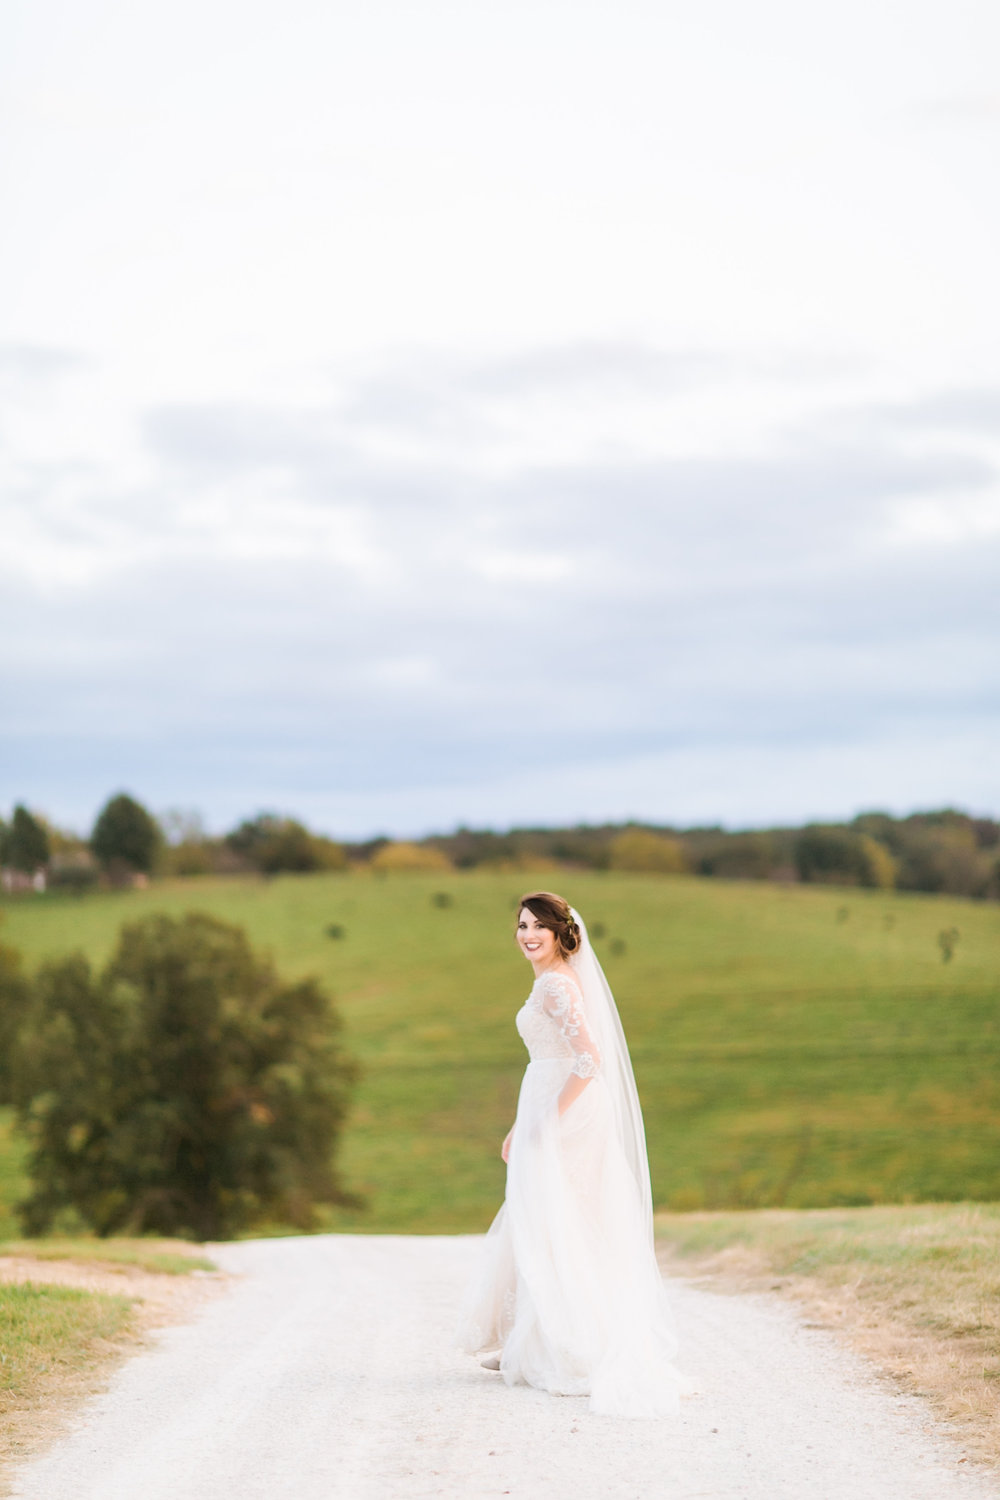 MissouriRusticWedding_StLouisWeddingPhotographer_AliciaDan_CatherineRhodesPhotography-4250-Edit.jpg